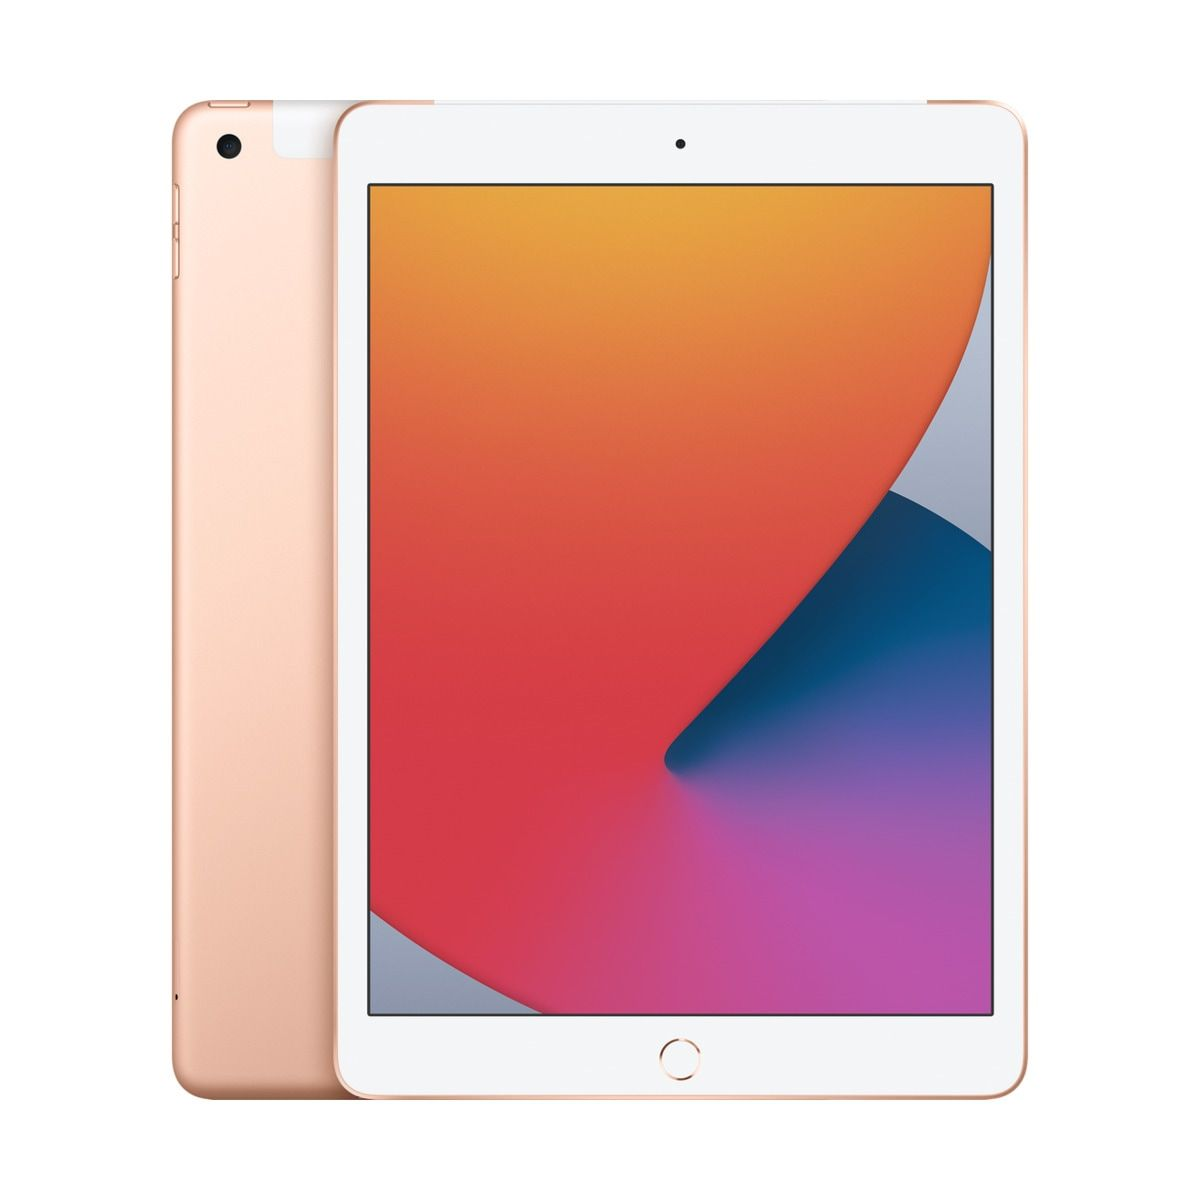 iPad Wi-Fi+Cell 128GB - Gold